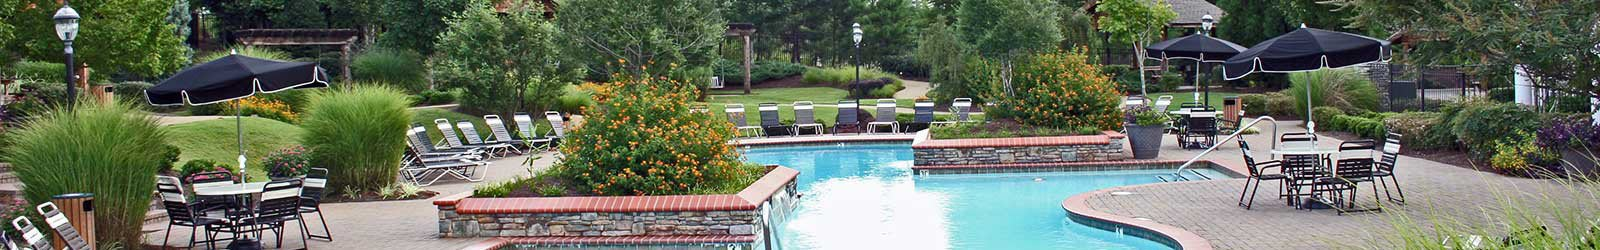 Schedule a tour to view our apartments in Newnan, GA